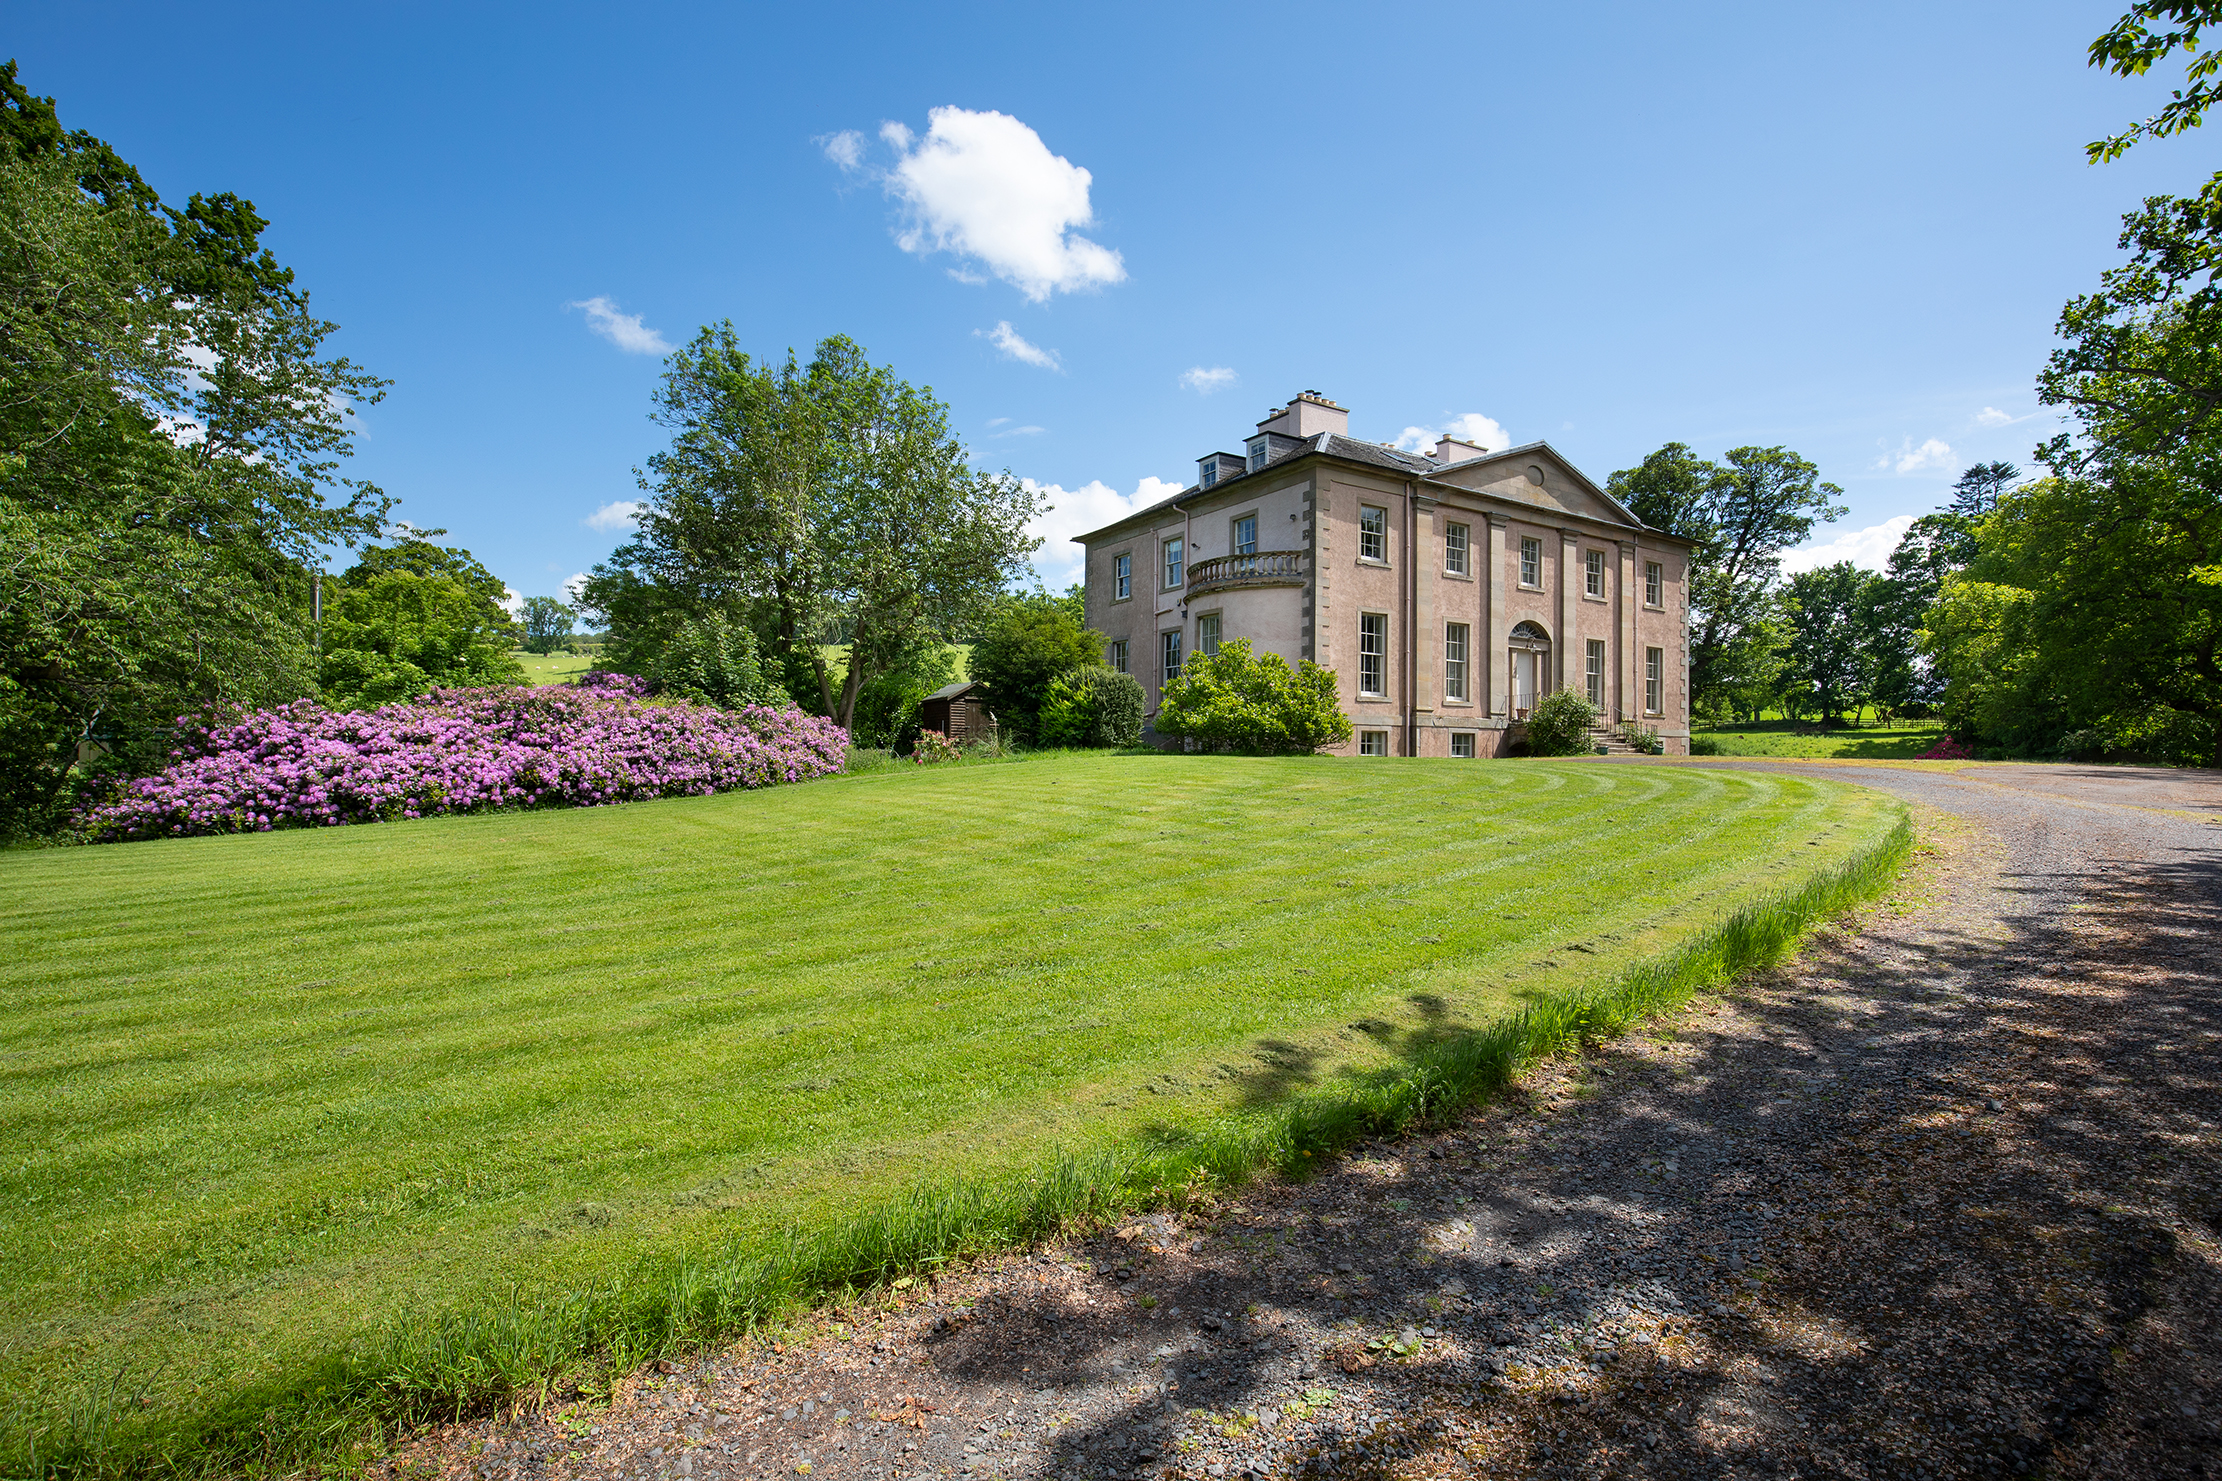 Rory Bremner's 'magical Borders retreat' for sale after 10 happy years and a 'labour of love' restoration